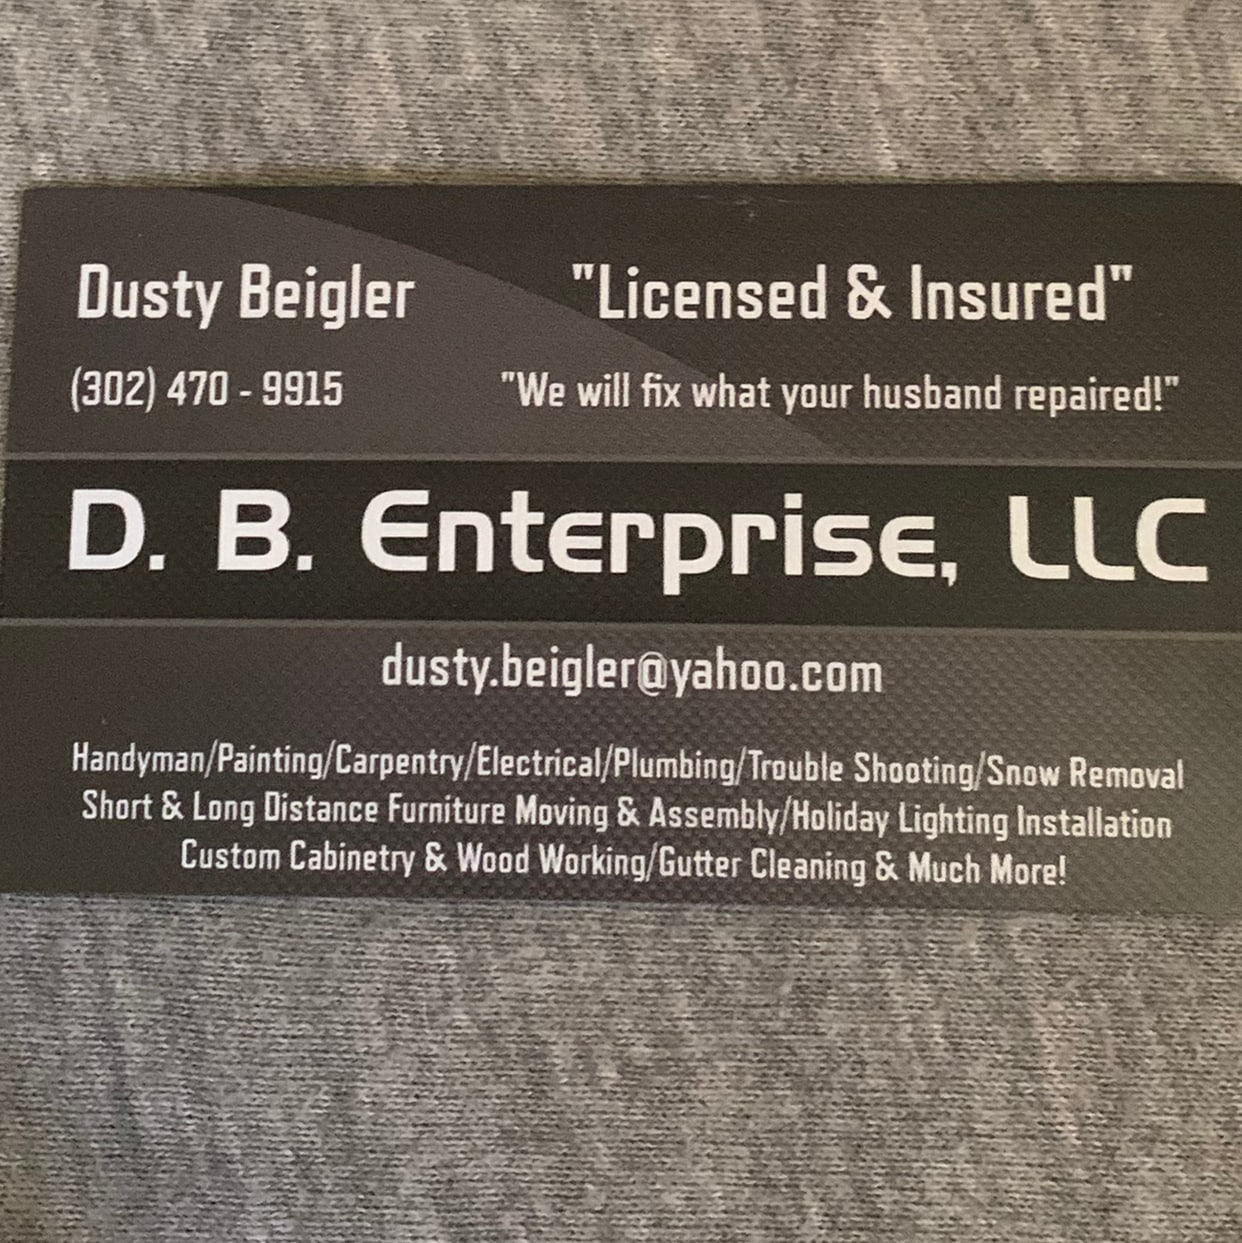 DB Enterprise